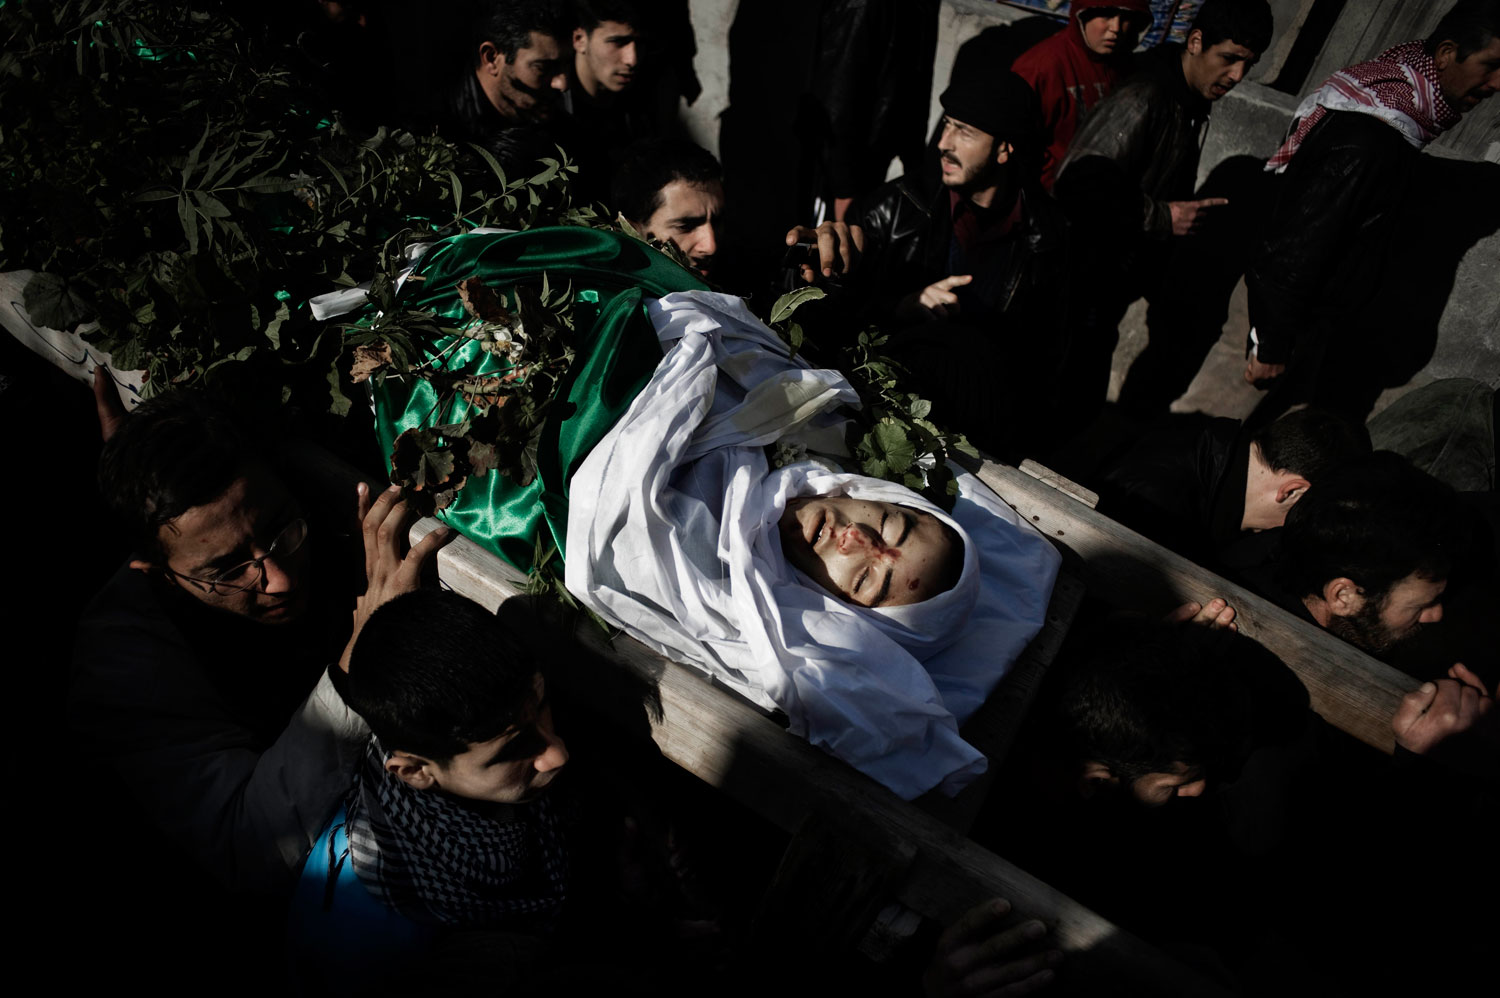 Mourners at the funeral of Mohammad Baakour, a 14-year-old shot dead by a Syrian army sniper in Al Qsair. Jan. 27, 2012